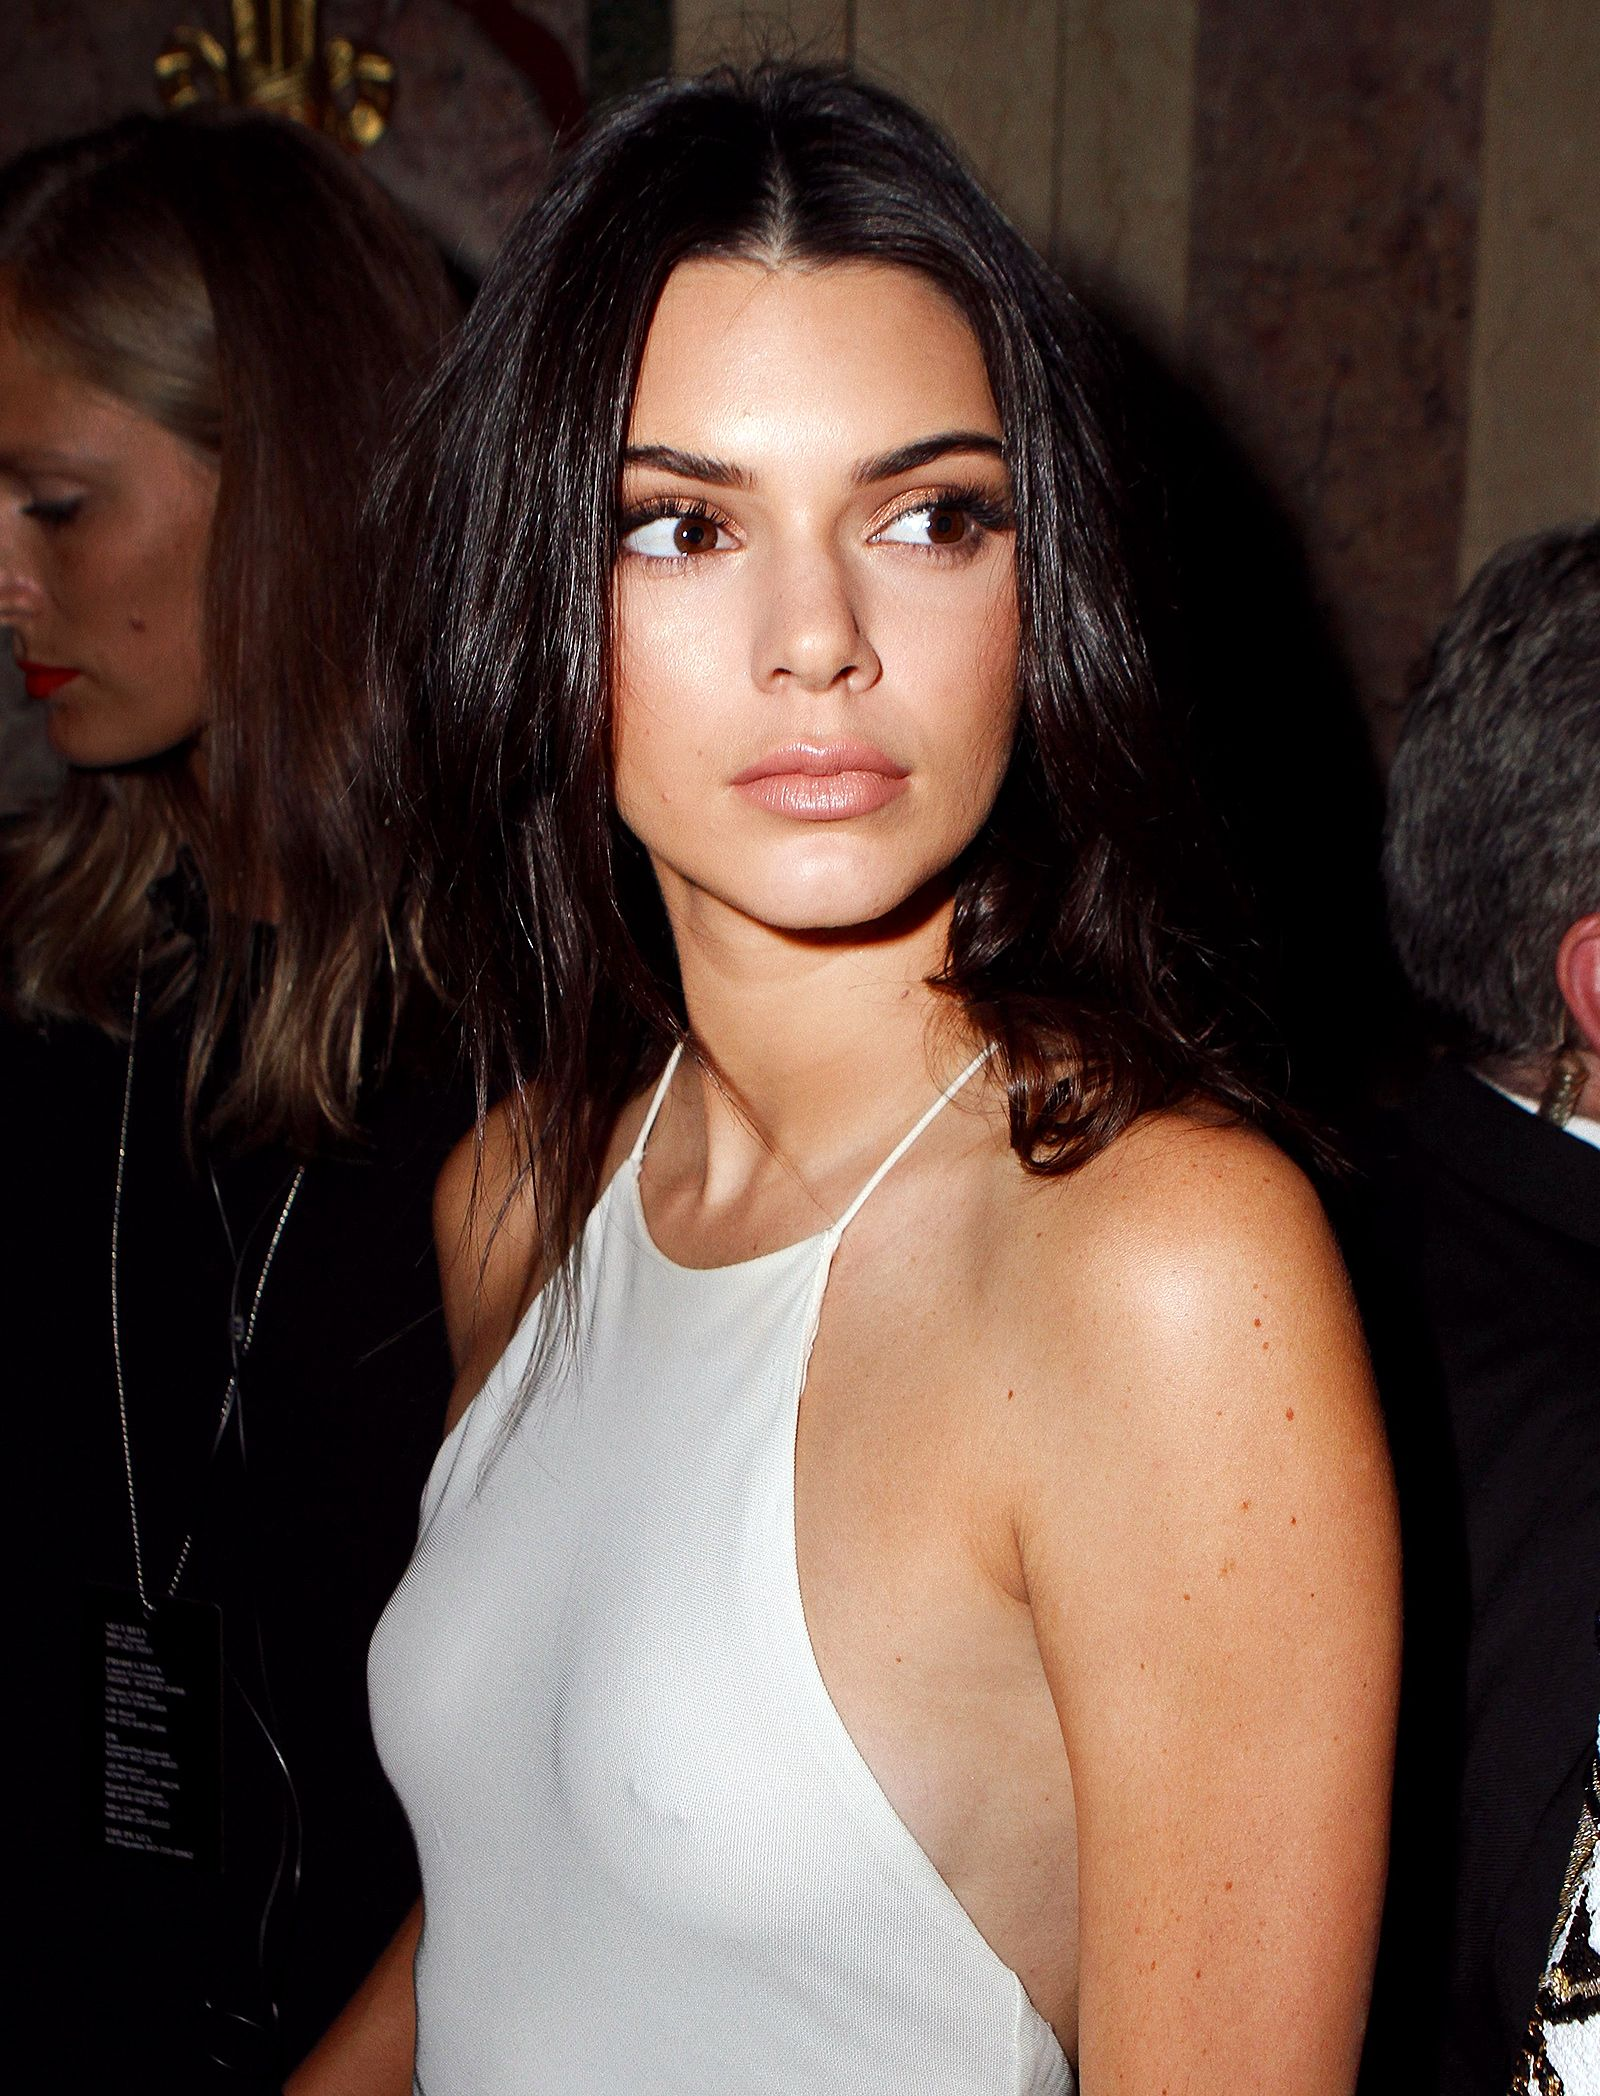 Kendall Jenner's Pierced Nipple Caught On Video At Coachella nude (49 photo), Tits Celebrites foto